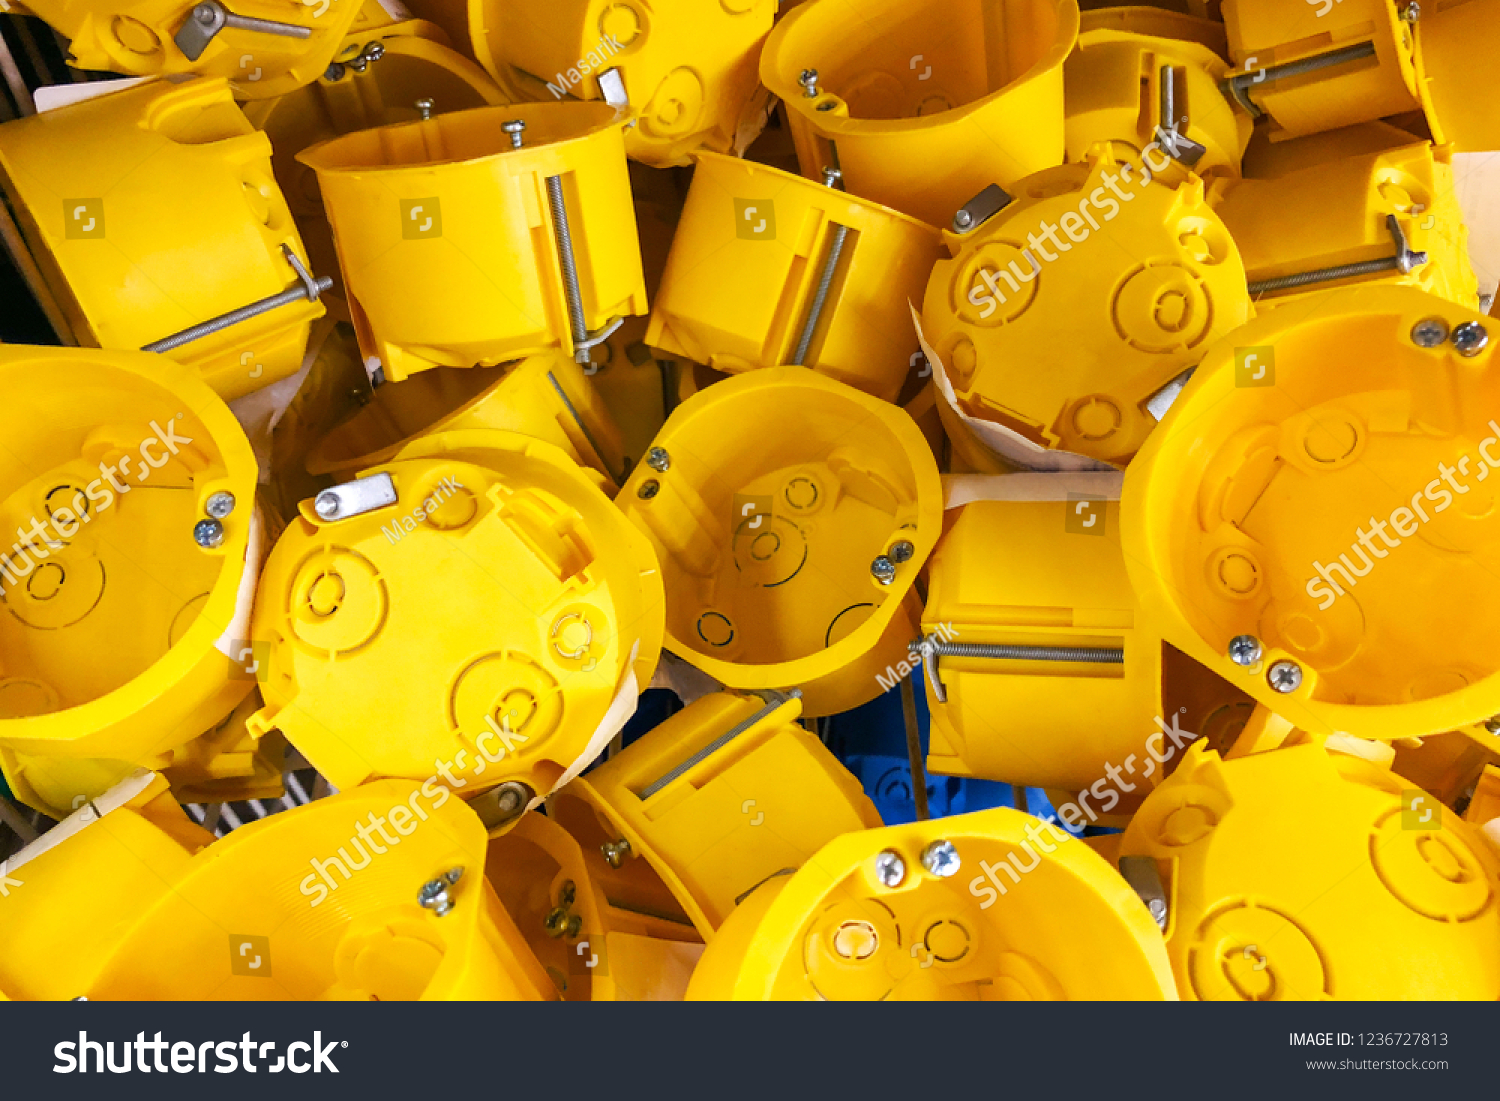 Yellow Outlet Box Electric Socket Domestic Stock Photo Edit Now Wiring Metal For Of Electrical In The Shop Window On Sale